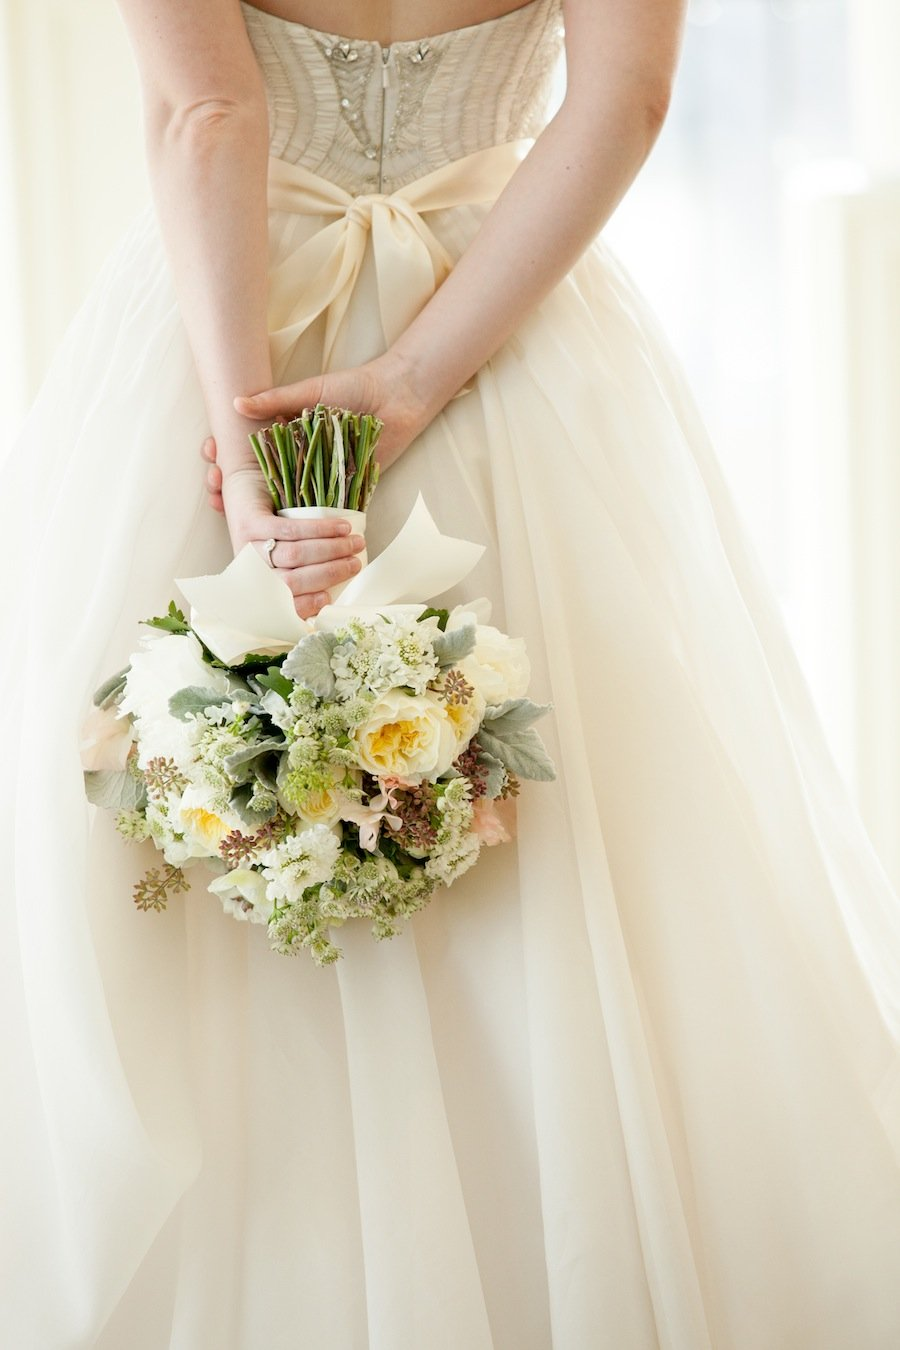 15 of the Most Beautiful Bridal Bouquets | Washingtonian